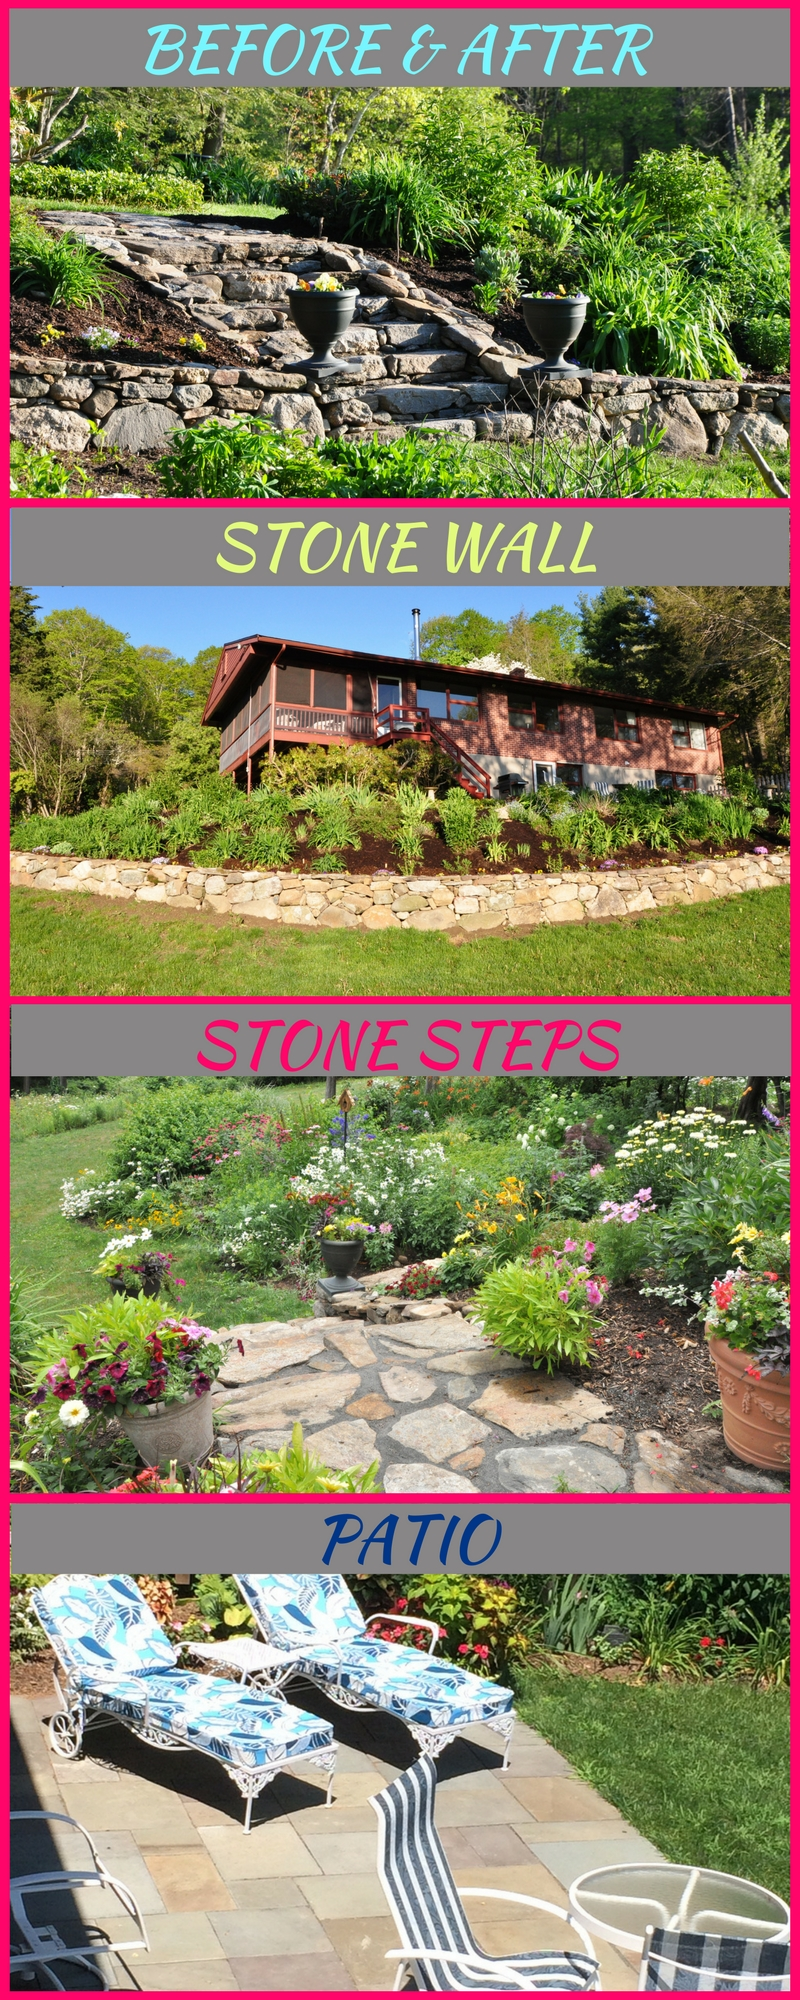 Landscape design part 2 side yard stone steps before and after eileen anderson realtor - Garden design before and after ...